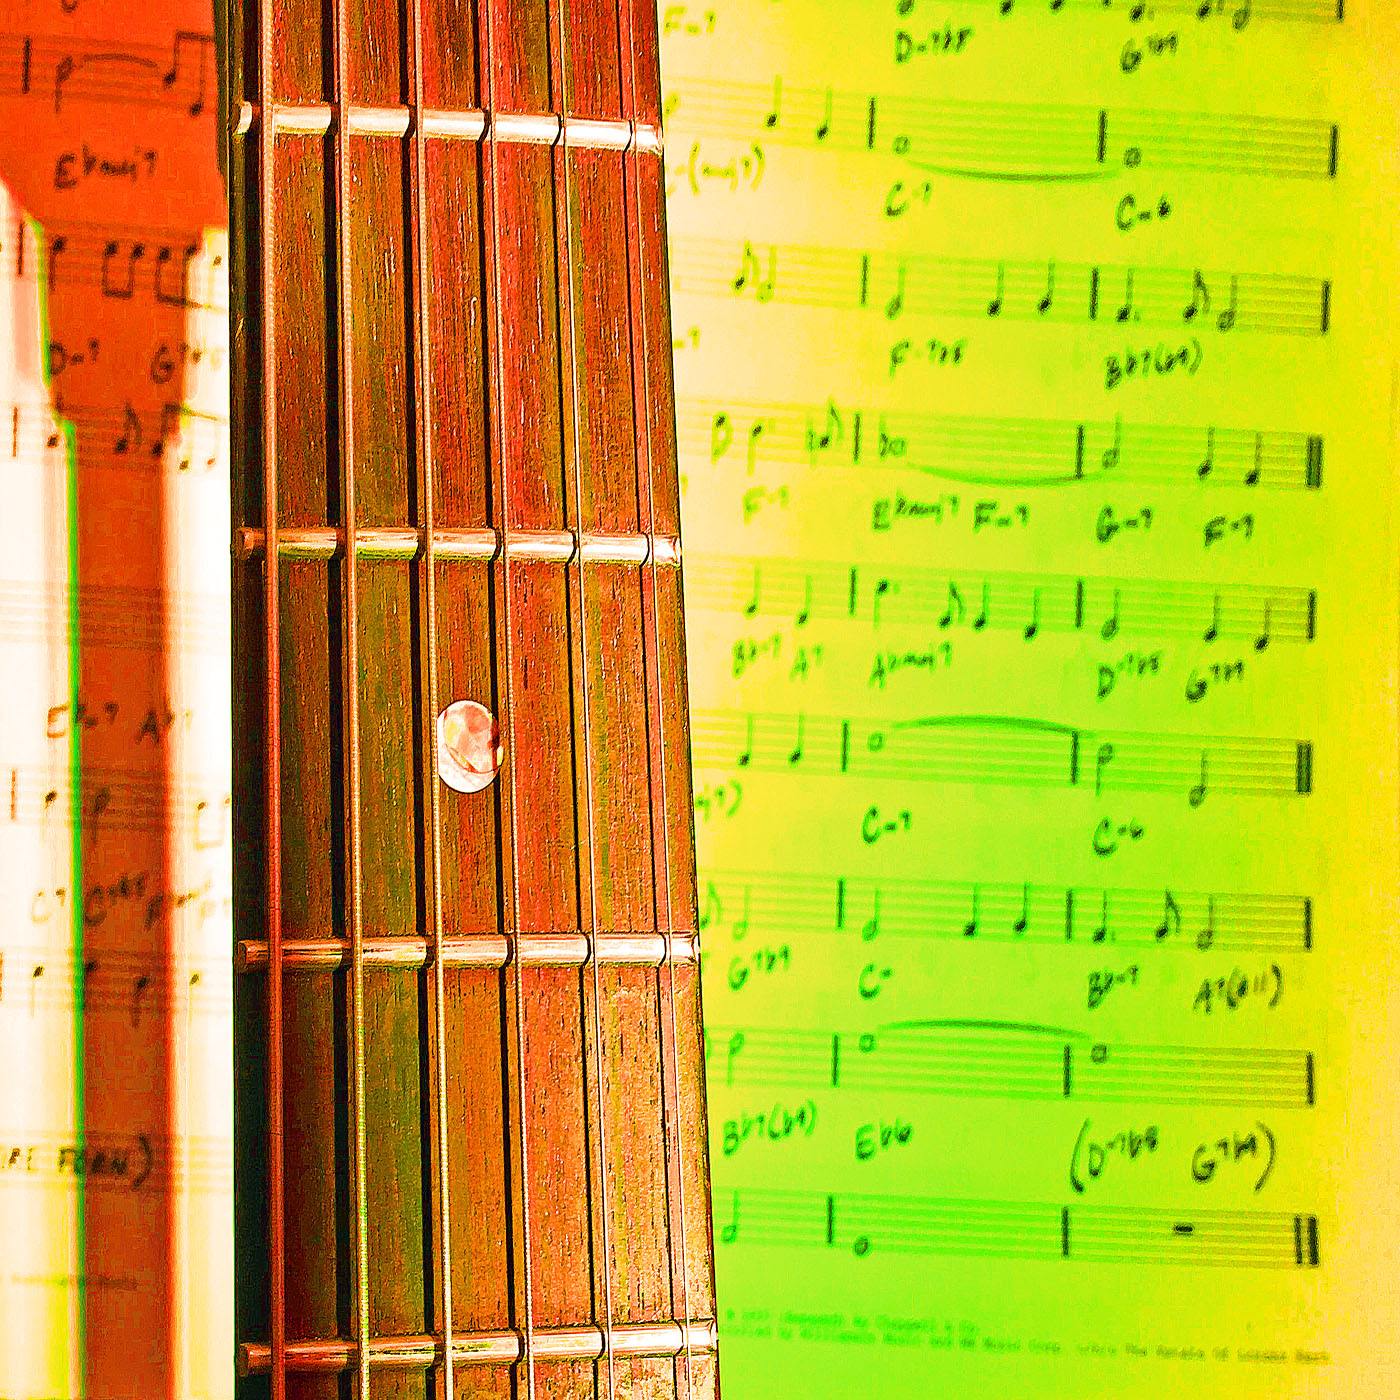 The Structure and Essence of Jazz – Chasing the Chords